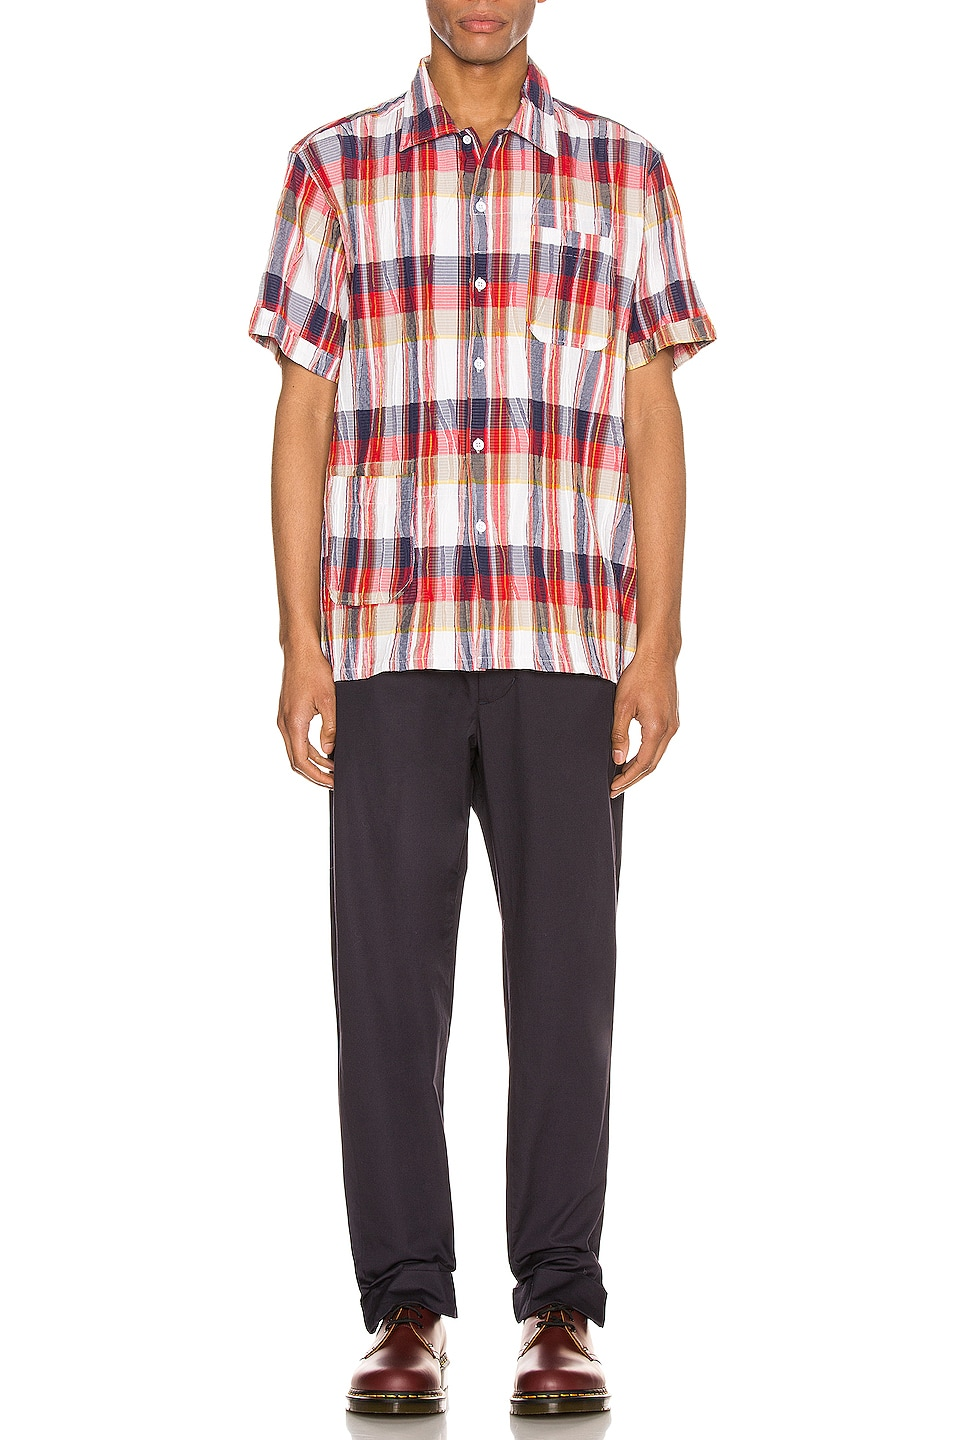 Image 4 of Engineered Garments Camp Shirt in Red & White Cotton Crepe Check